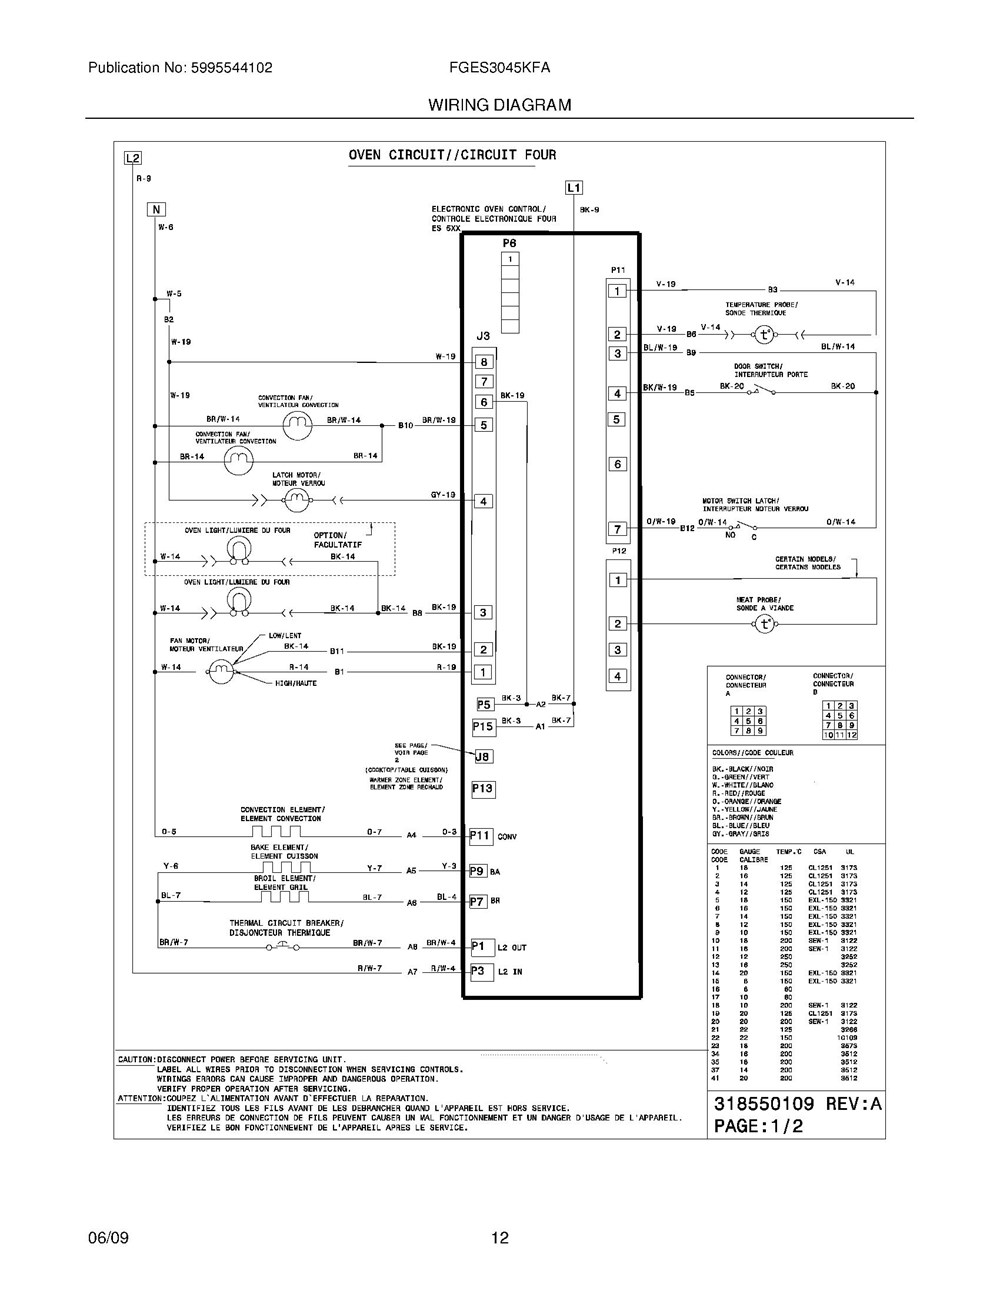 Fges3045kfa Frigidaire Company Backguard 05body 07top Drawer 09door 01cover 10wiring Diagram